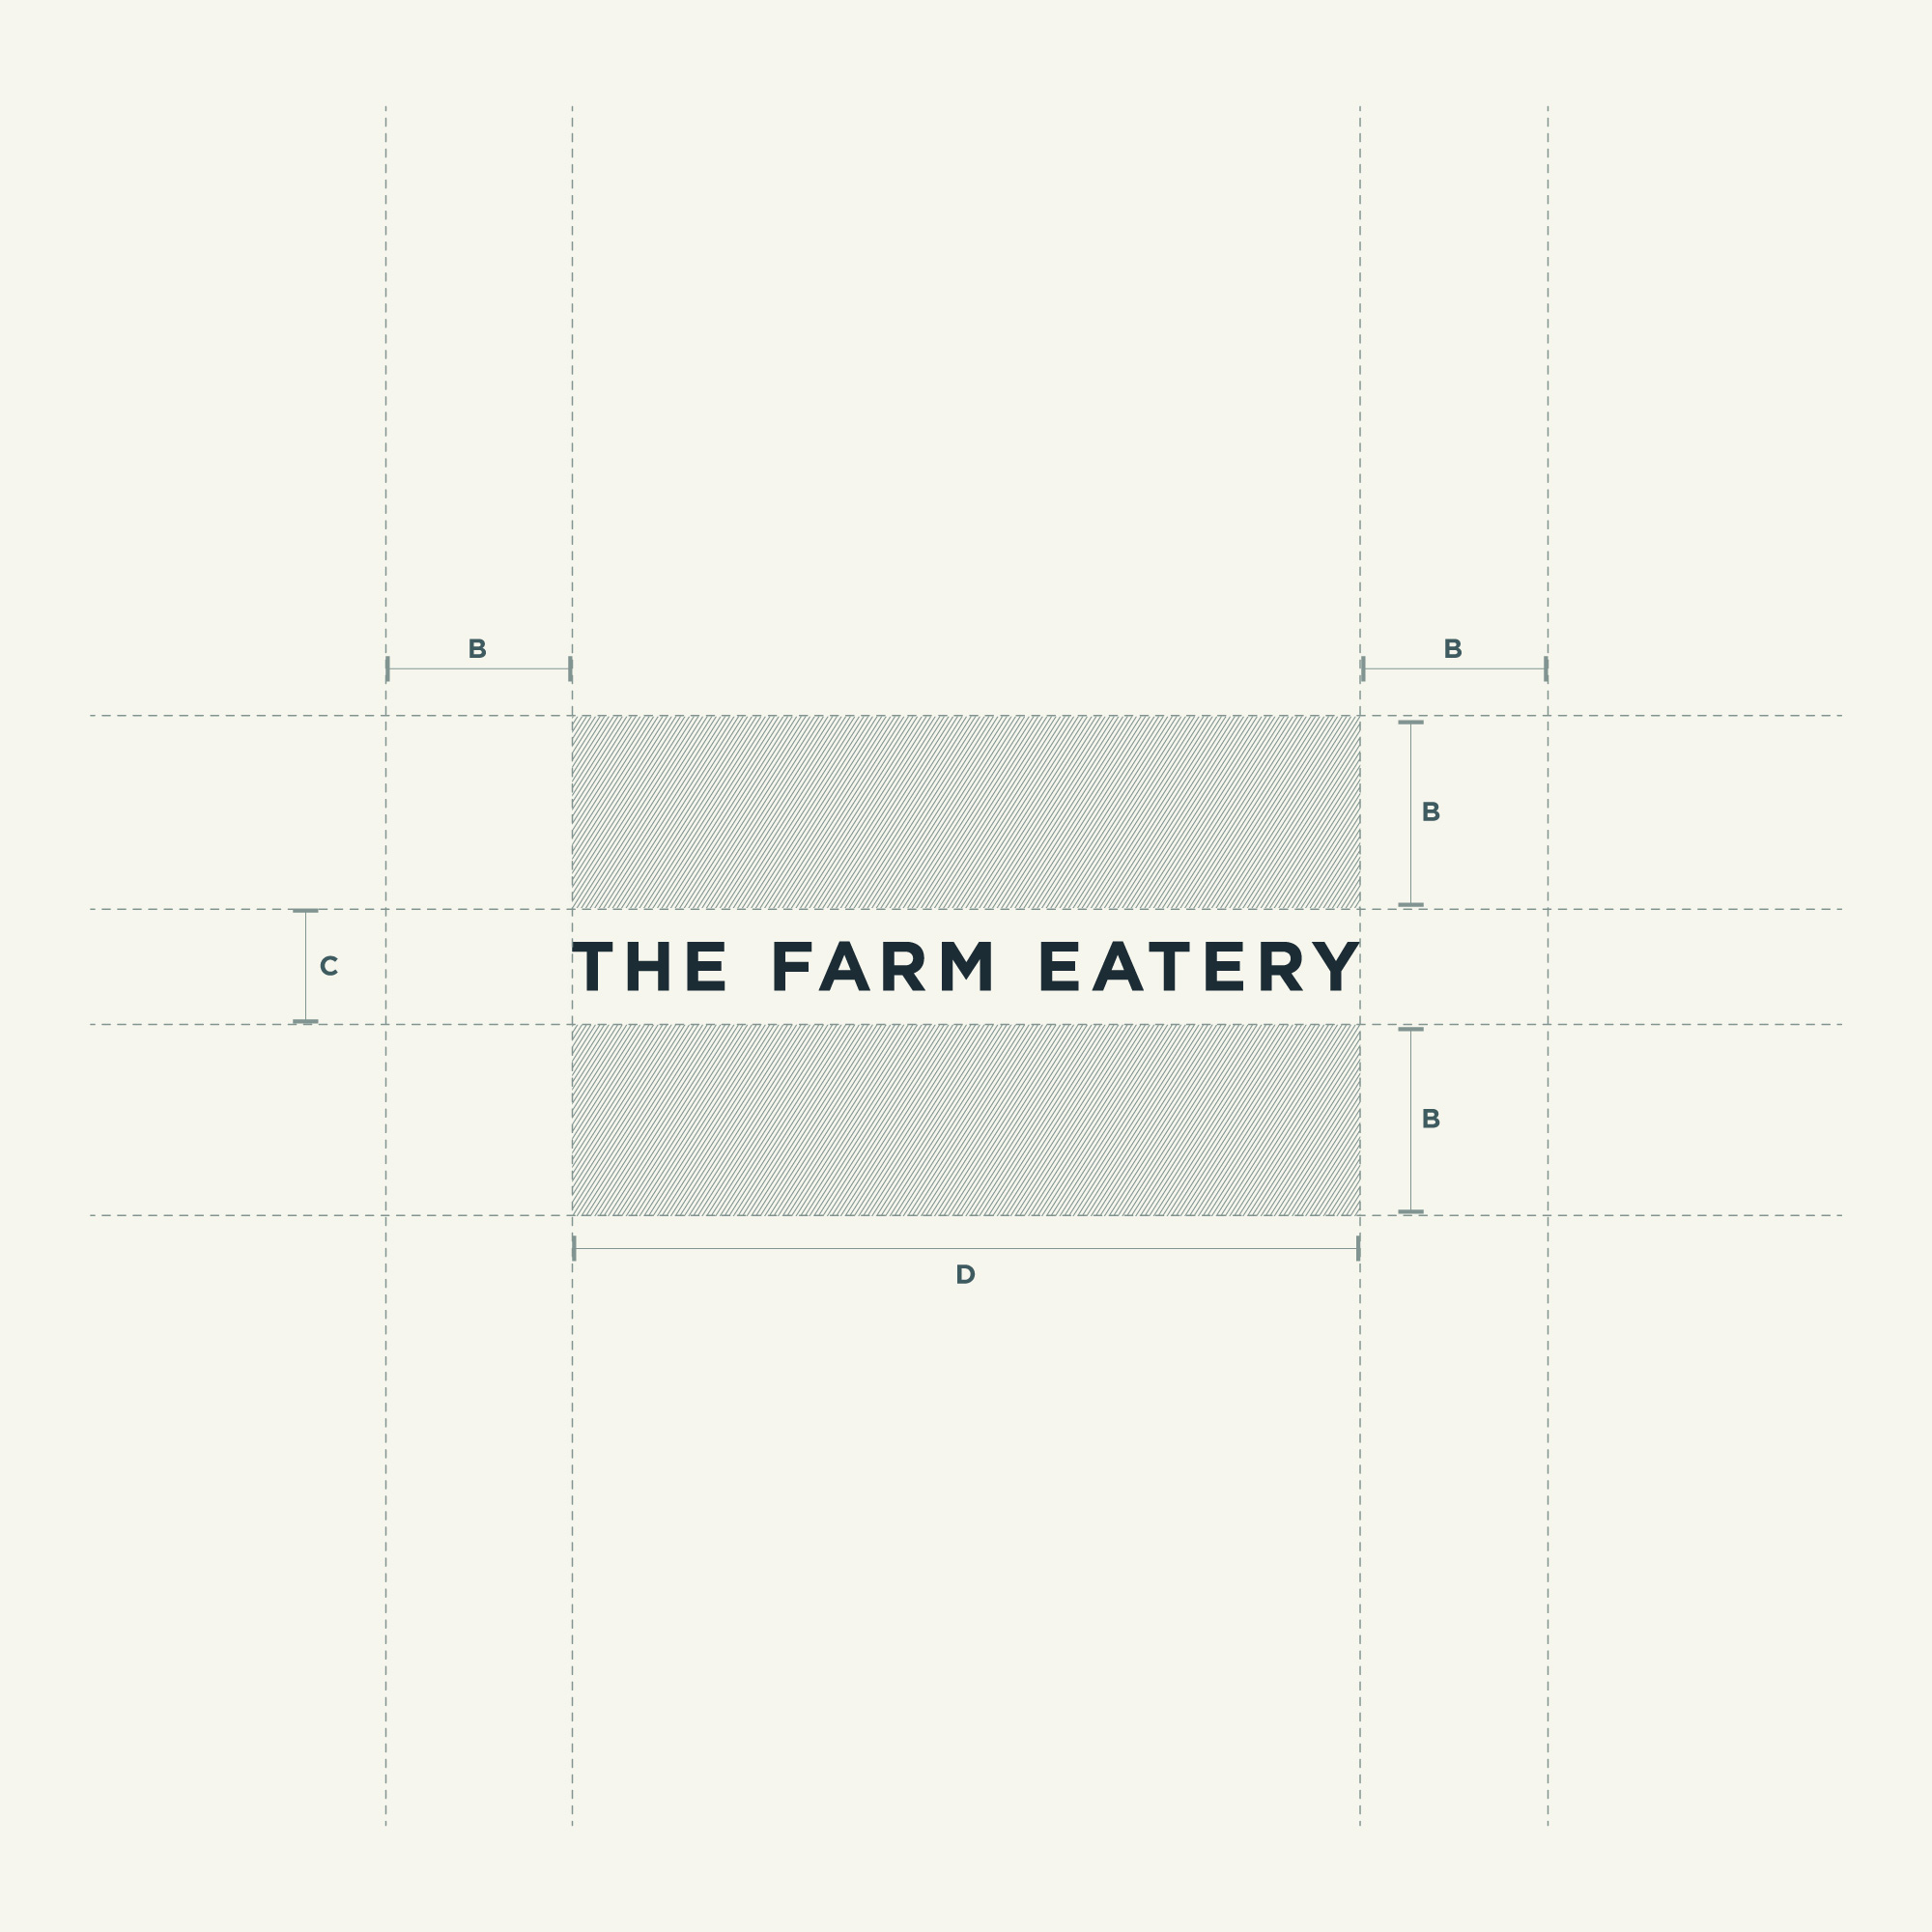 The Farm Eatery Visual System (Logotype)